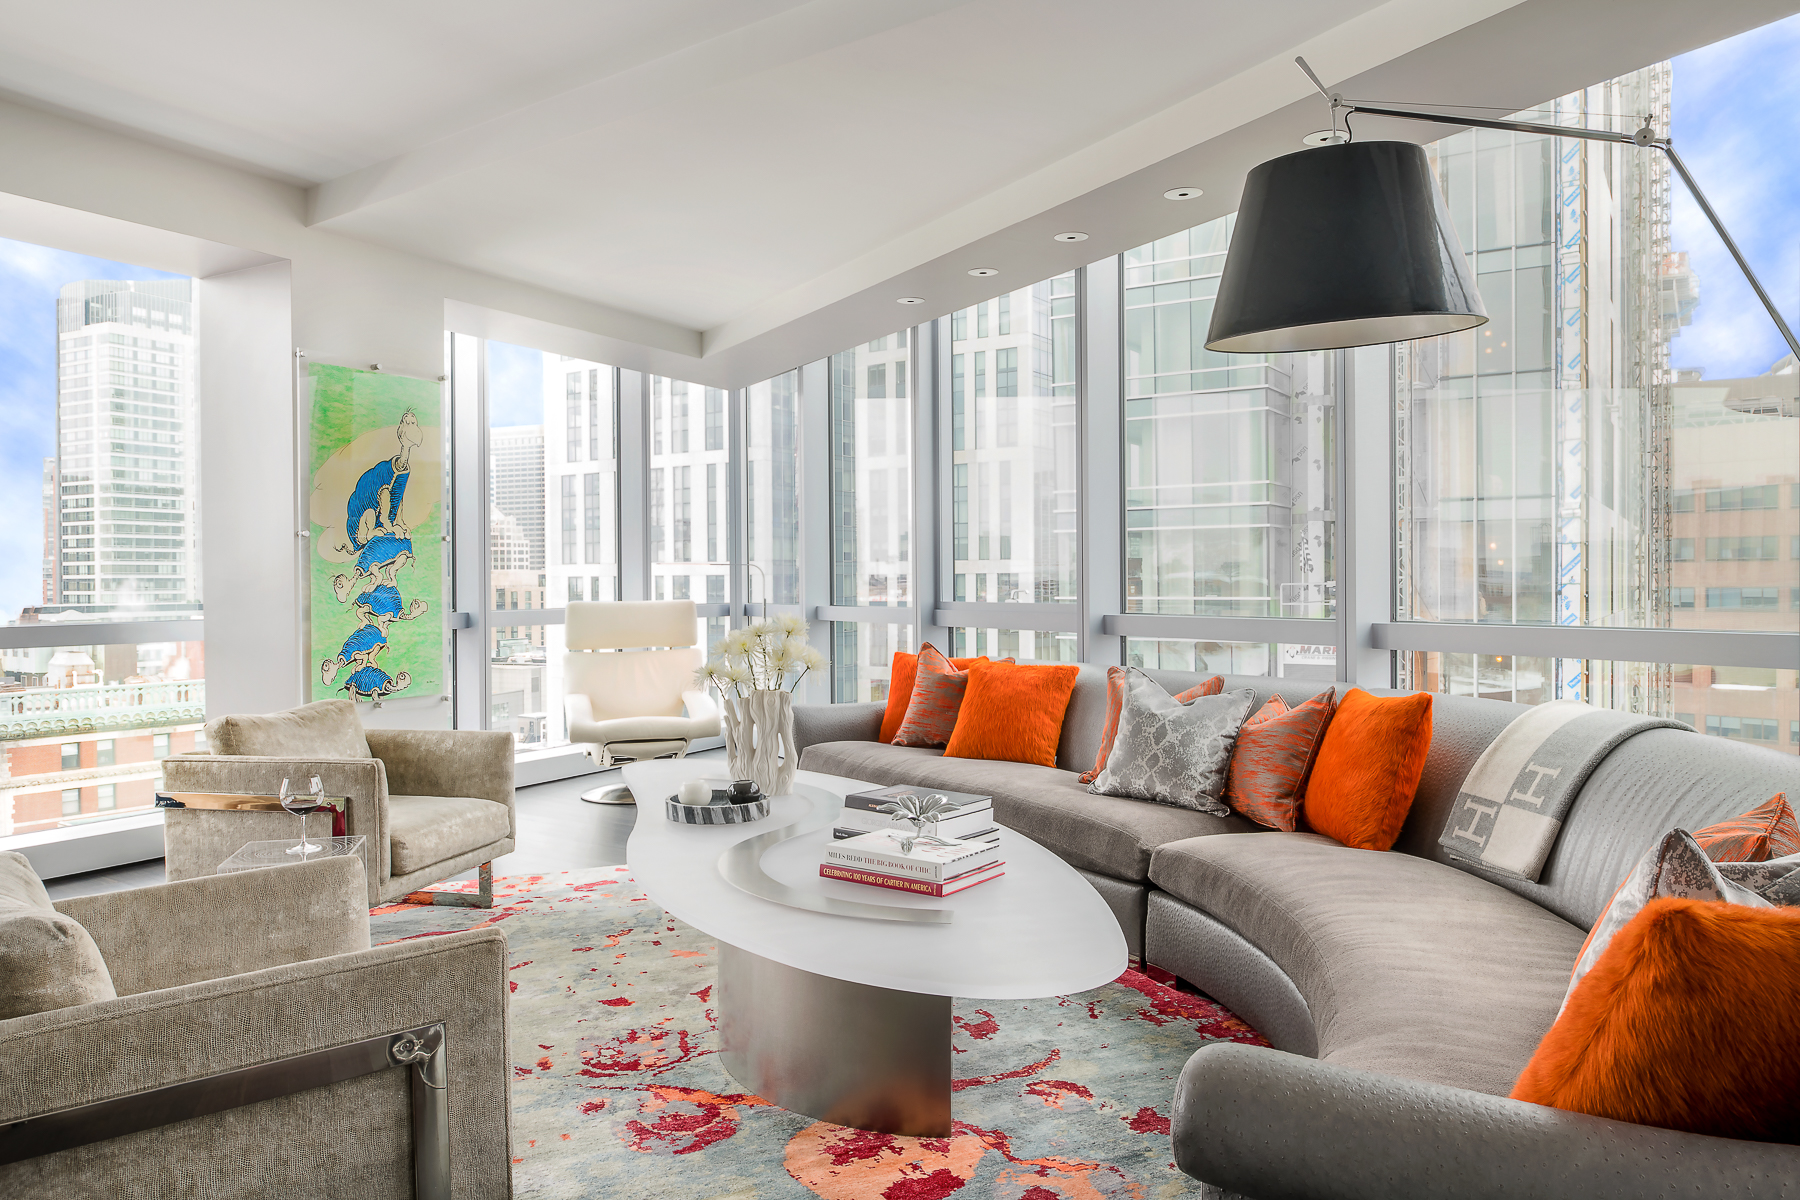 Custom curved sofa and cocktail table in living space by Eric Roseff Designs